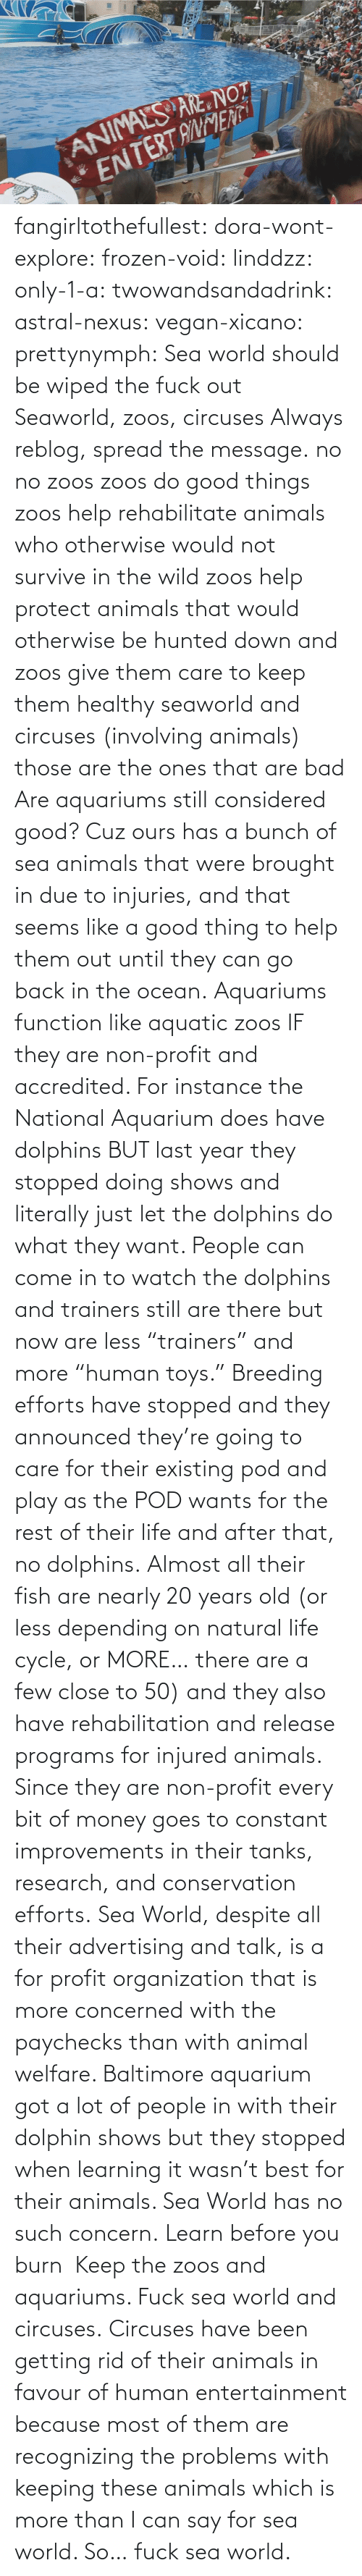 "sea: fangirltothefullest:  dora-wont-explore:  frozen-void:  linddzz:  only-1-a:  twowandsandadrink:  astral-nexus:  vegan-xicano:  prettynymph:  Sea world should be wiped the fuck out  Seaworld, zoos, circuses  Always reblog, spread the message.  no no zoos zoos do good things zoos help rehabilitate animals who otherwise would not survive in the wild zoos help protect animals that would otherwise be hunted down and zoos give them care to keep them healthy seaworld and circuses (involving animals) those are the ones that are bad  Are aquariums still considered good? Cuz ours has a bunch of sea animals that were brought in due to injuries, and that seems like a good thing to help them out until they can go back in the ocean.  Aquariums function like aquatic zoos IF they are non-profit and accredited. For instance the National Aquarium does have dolphins BUT last year they stopped doing shows and literally just let the dolphins do what they want. People can come in to watch the dolphins and trainers still are there but now are less ""trainers"" and more ""human toys."" Breeding efforts have stopped and they announced they're going to care for their existing pod and play as the POD wants for the rest of their life and after that, no dolphins. Almost all their fish are nearly 20 years old (or less depending on natural life cycle, or MORE… there are a few close to 50) and they also have rehabilitation and release programs for injured animals. Since they are non-profit every bit of money goes to constant improvements in their tanks, research, and conservation efforts. Sea World, despite all their advertising and talk, is a for profit organization that is more concerned with the paychecks than with animal welfare. Baltimore aquarium got a lot of people in with their dolphin shows but they stopped when learning it wasn't best for their animals. Sea World has no such concern.  Learn before you burn   Keep the zoos and aquariums. Fuck sea world and circuses.  Circuses have been getting rid of  their animals in favour of human entertainment because most of them are recognizing the problems with keeping these animals which is more than I can say for sea world. So… fuck sea world."